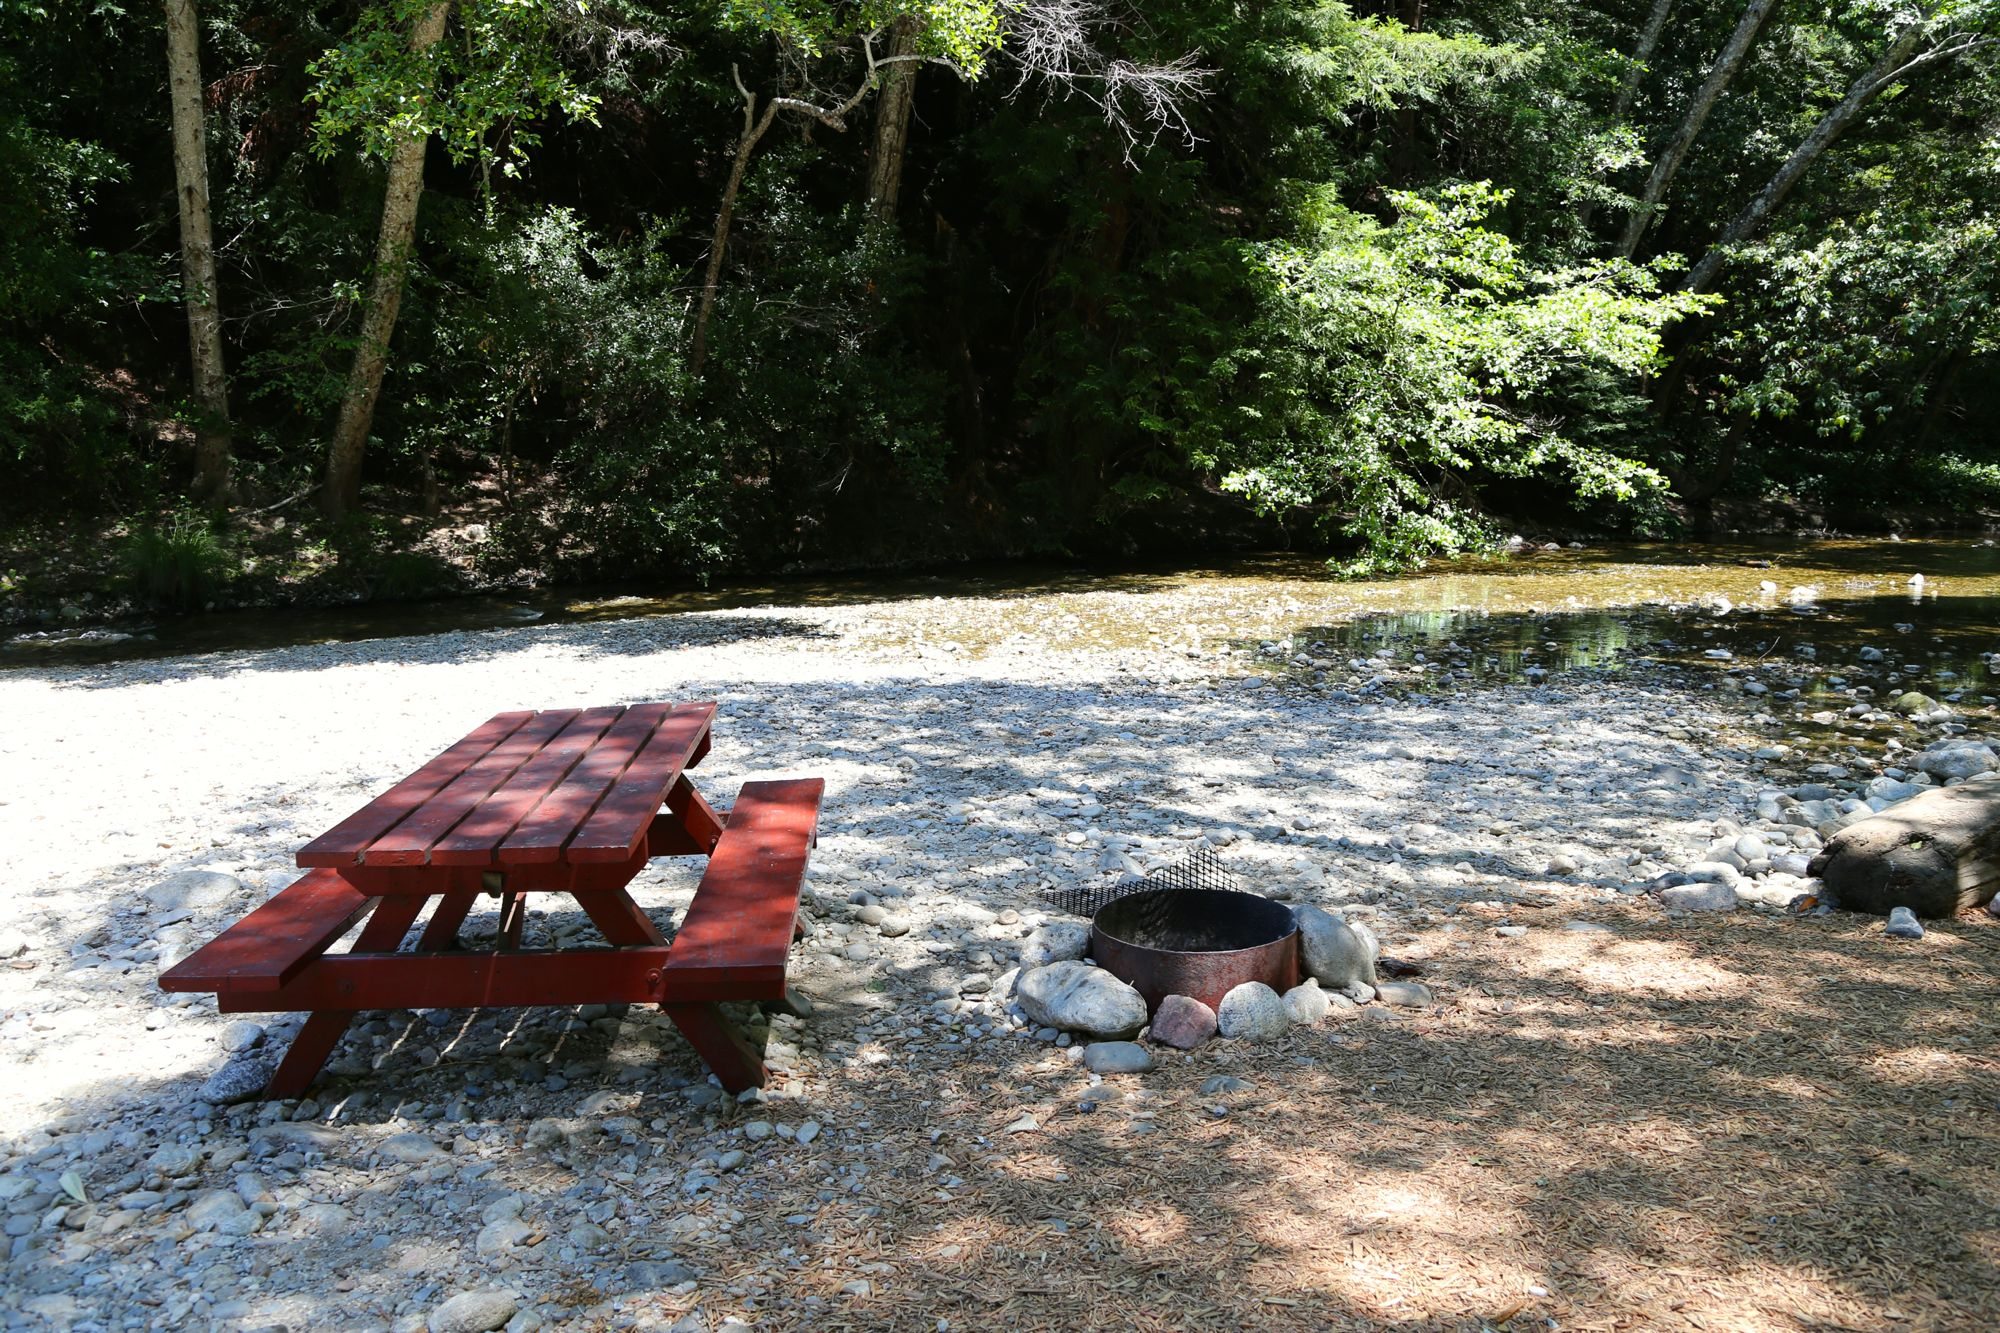 Riverside campground and cabins news from tripsicor for Big sur campground and cabins